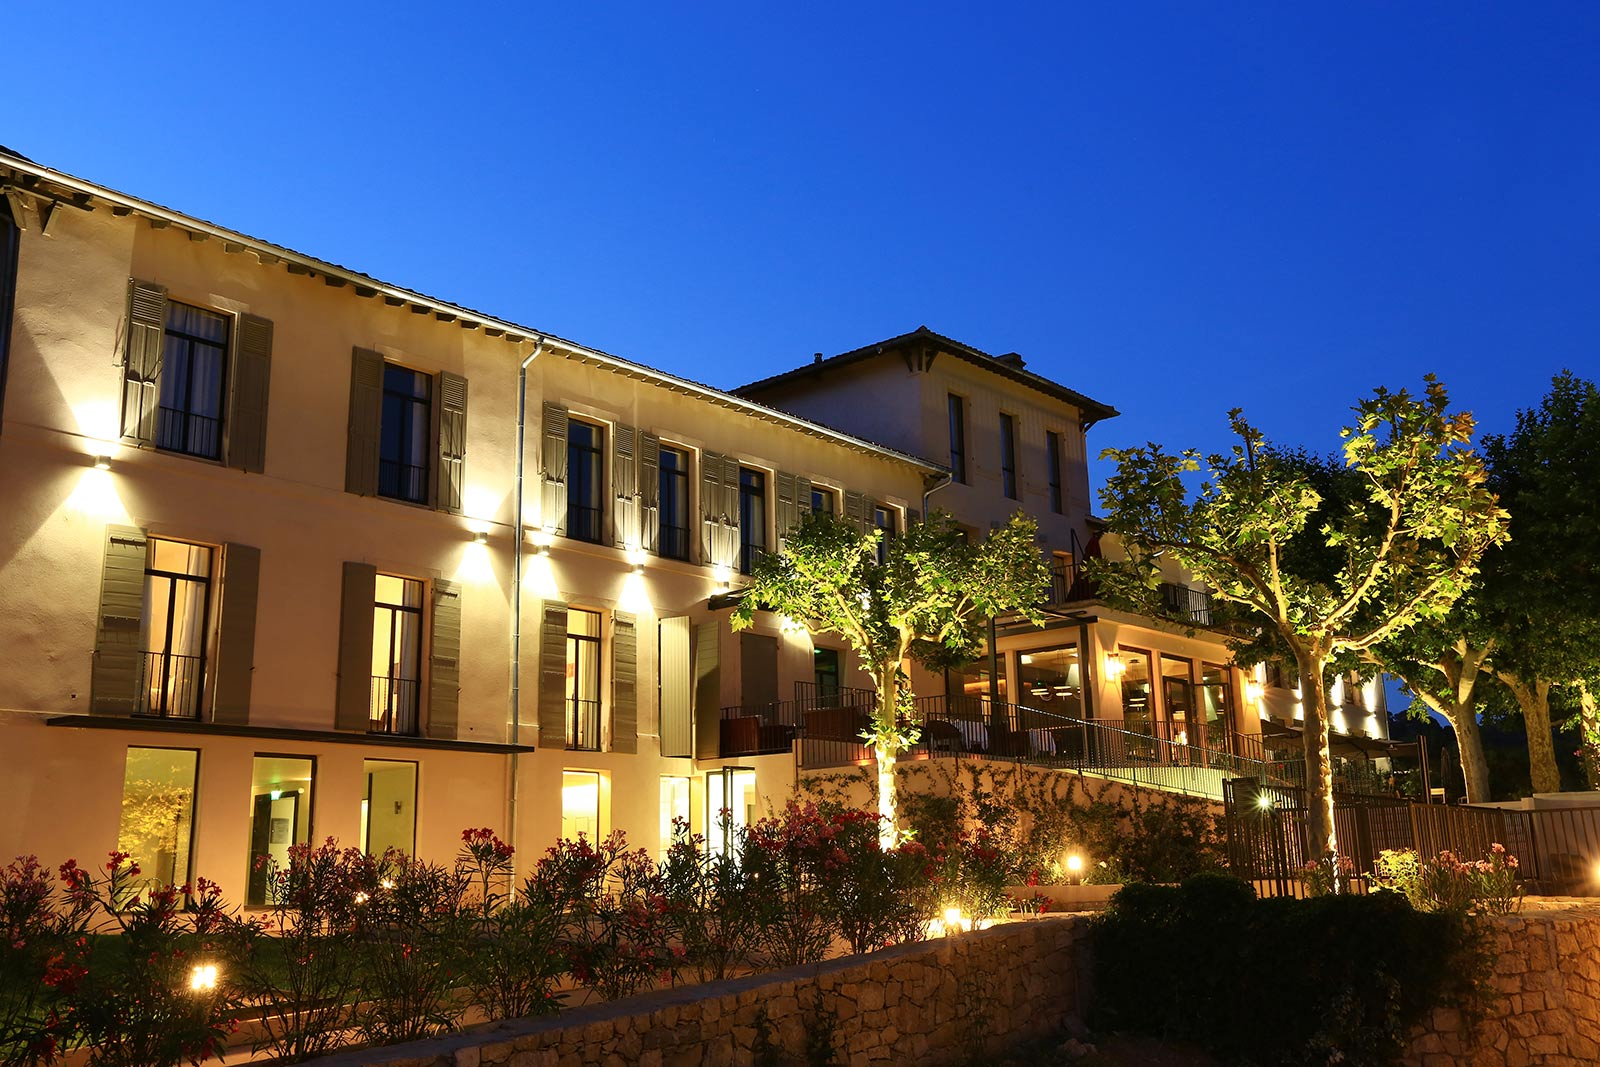 Les lodges hotel and spa aix en provence luxecoliving 39 s for Best small hotels in the world